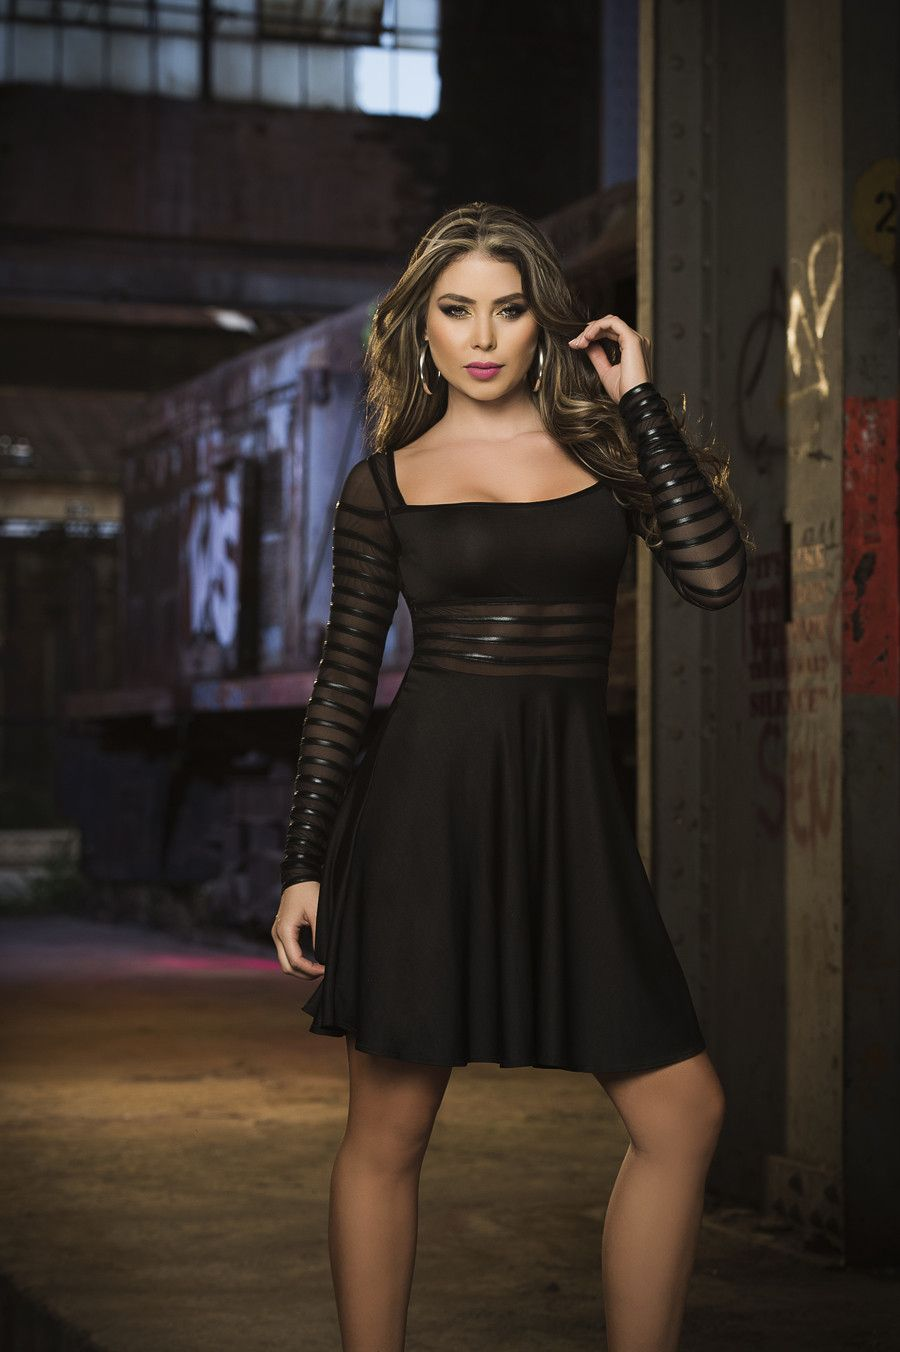 Black Sexy Winter Dress | Paola Canas | Pinterest